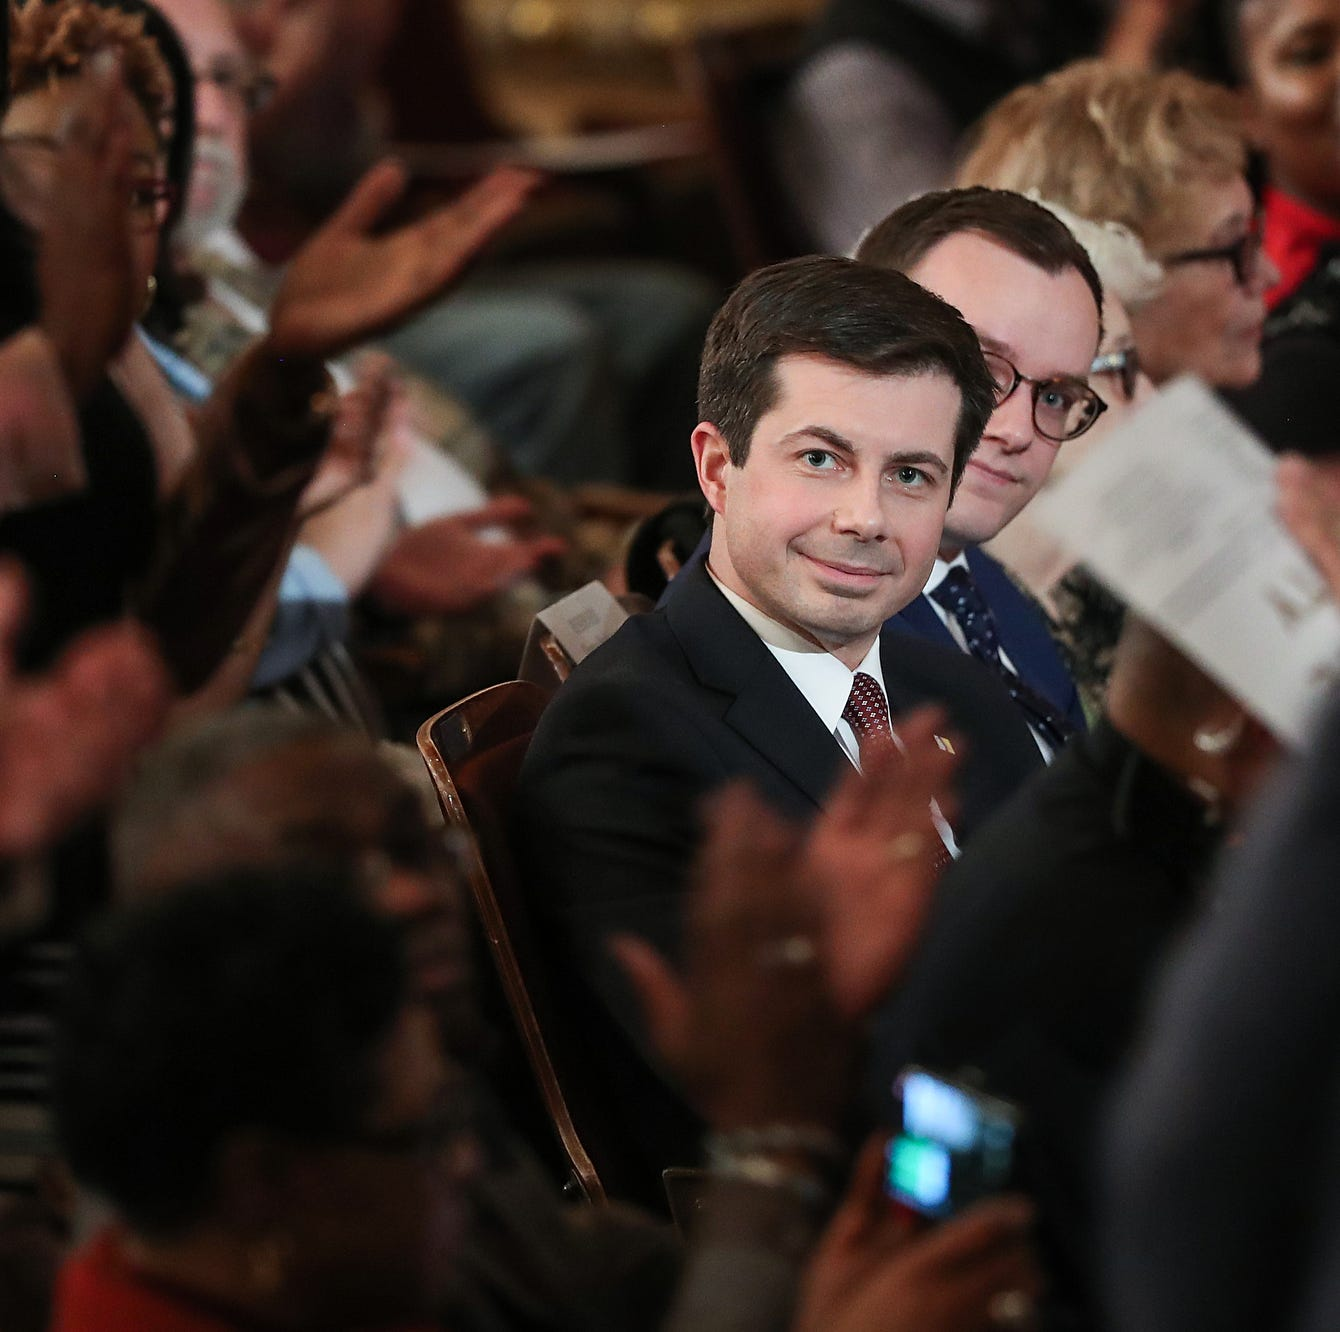 Pete Buttigieg says he's mayor of a turnaround city. Here's how that claim stands up.